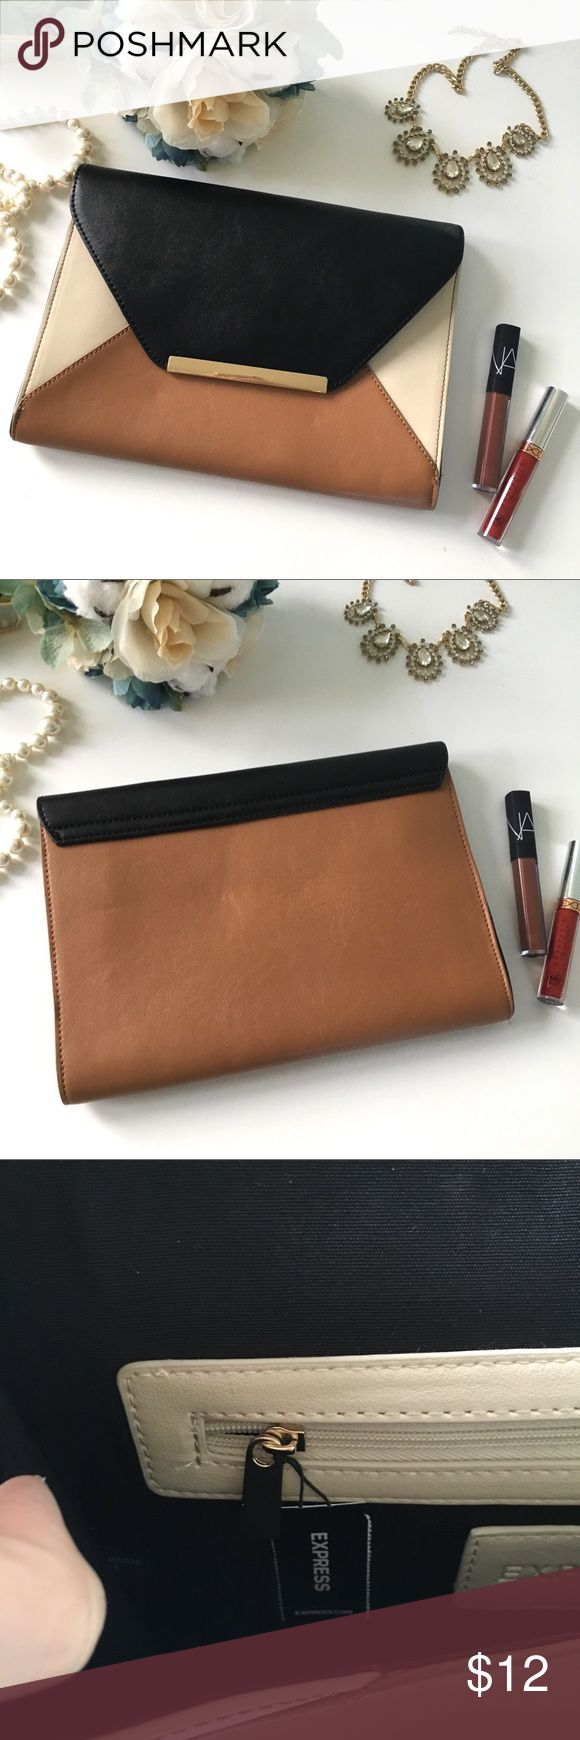 Express Colorblock Envelope Clutch This clutch from Express is new with tags, and has never been used! Gorgeous neutral colors that go with everything, and gold hardware for a touch of chic. Hope you love it! 💕 Express Bags Clutches & Wristlets